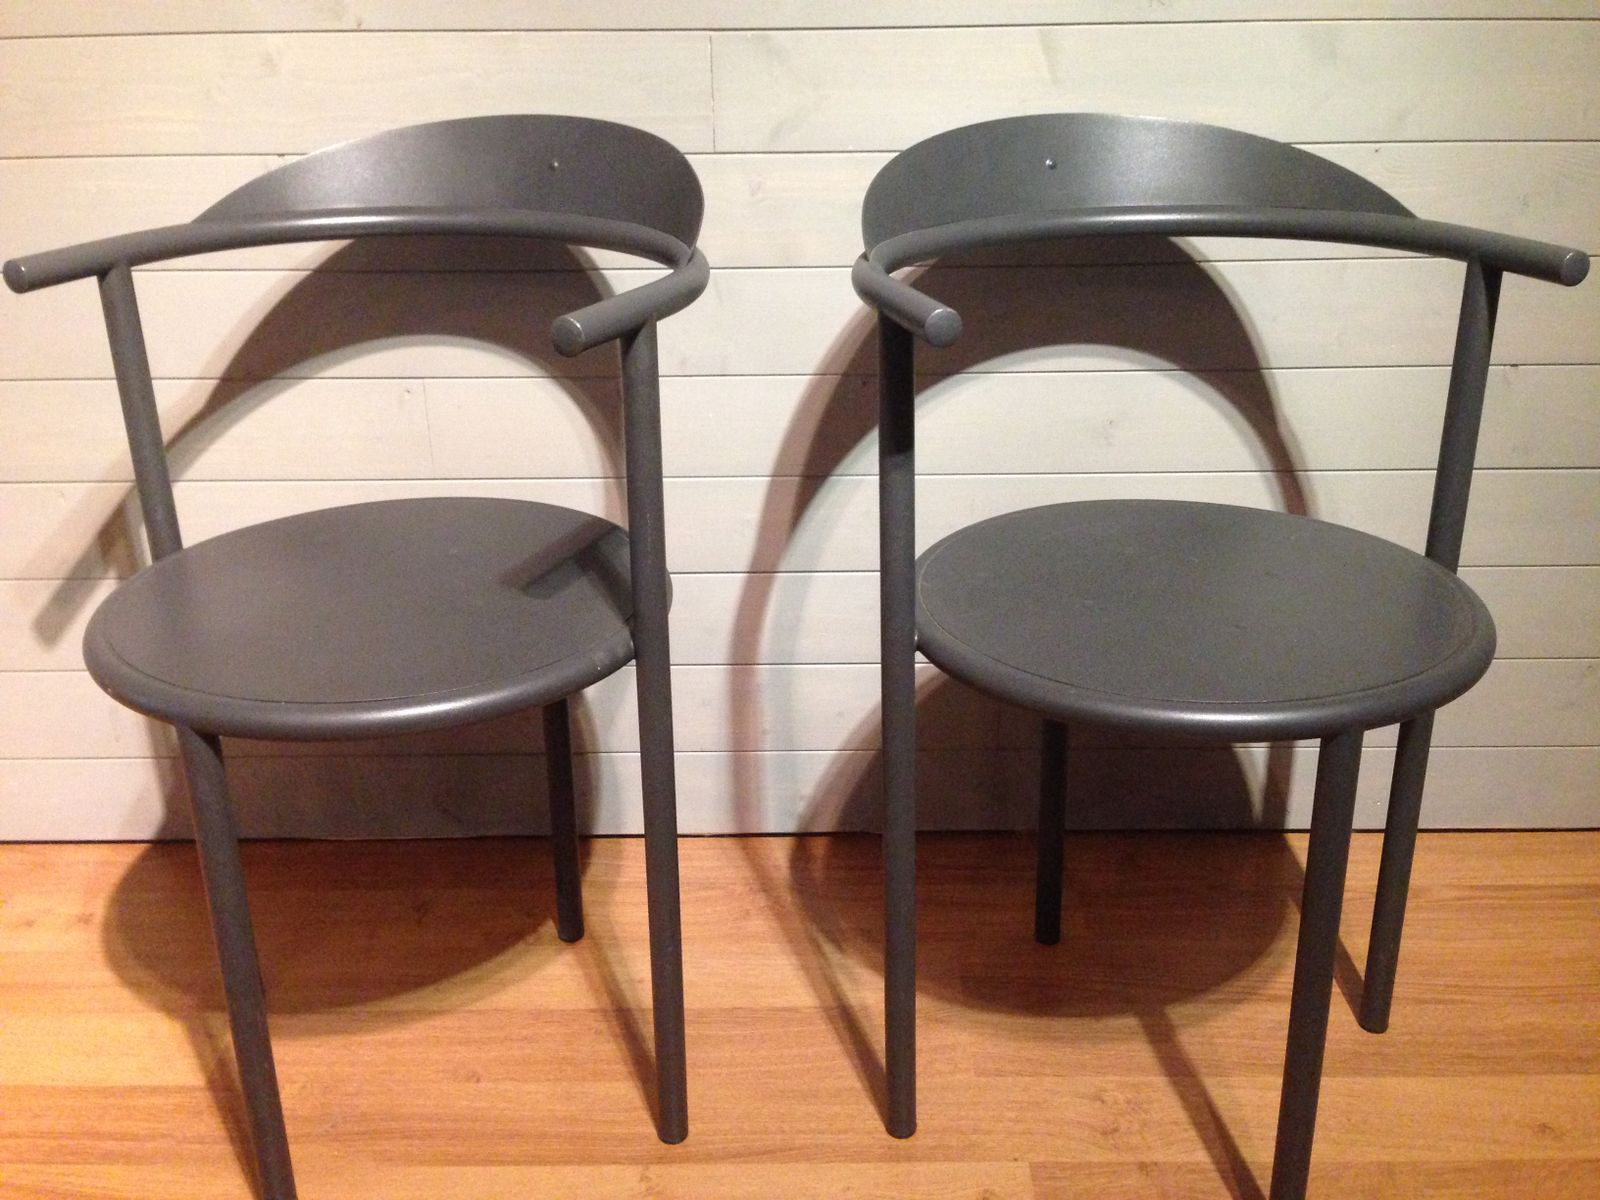 Dining chairs by philippe starck 1987 set of 2 for sale for Chaise de philippe starck